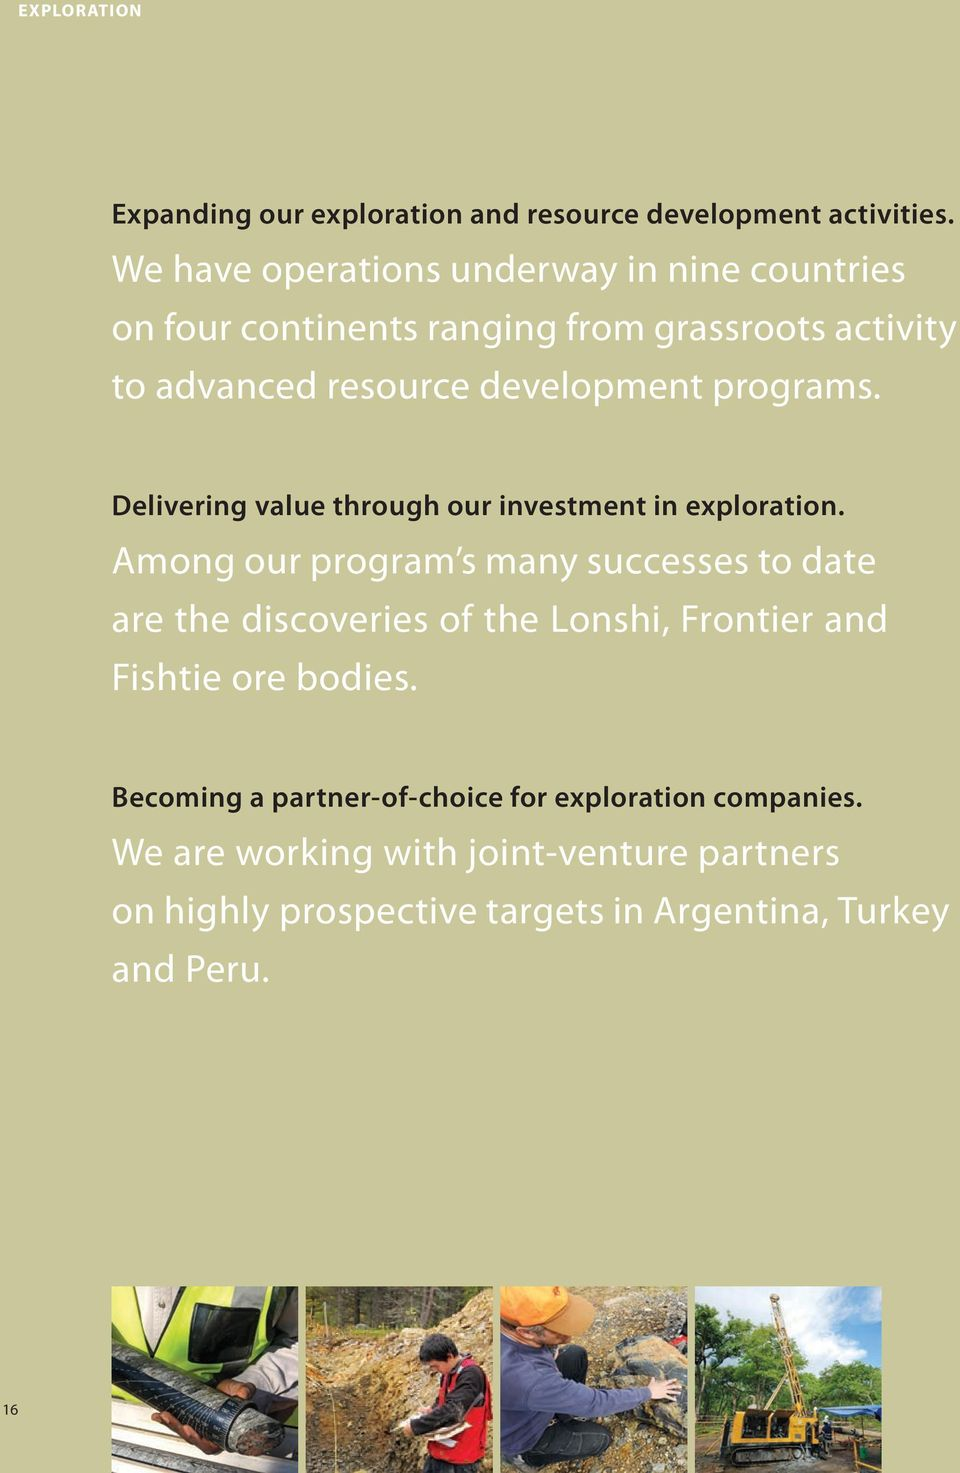 programs. Delivering value through our investment in exploration.